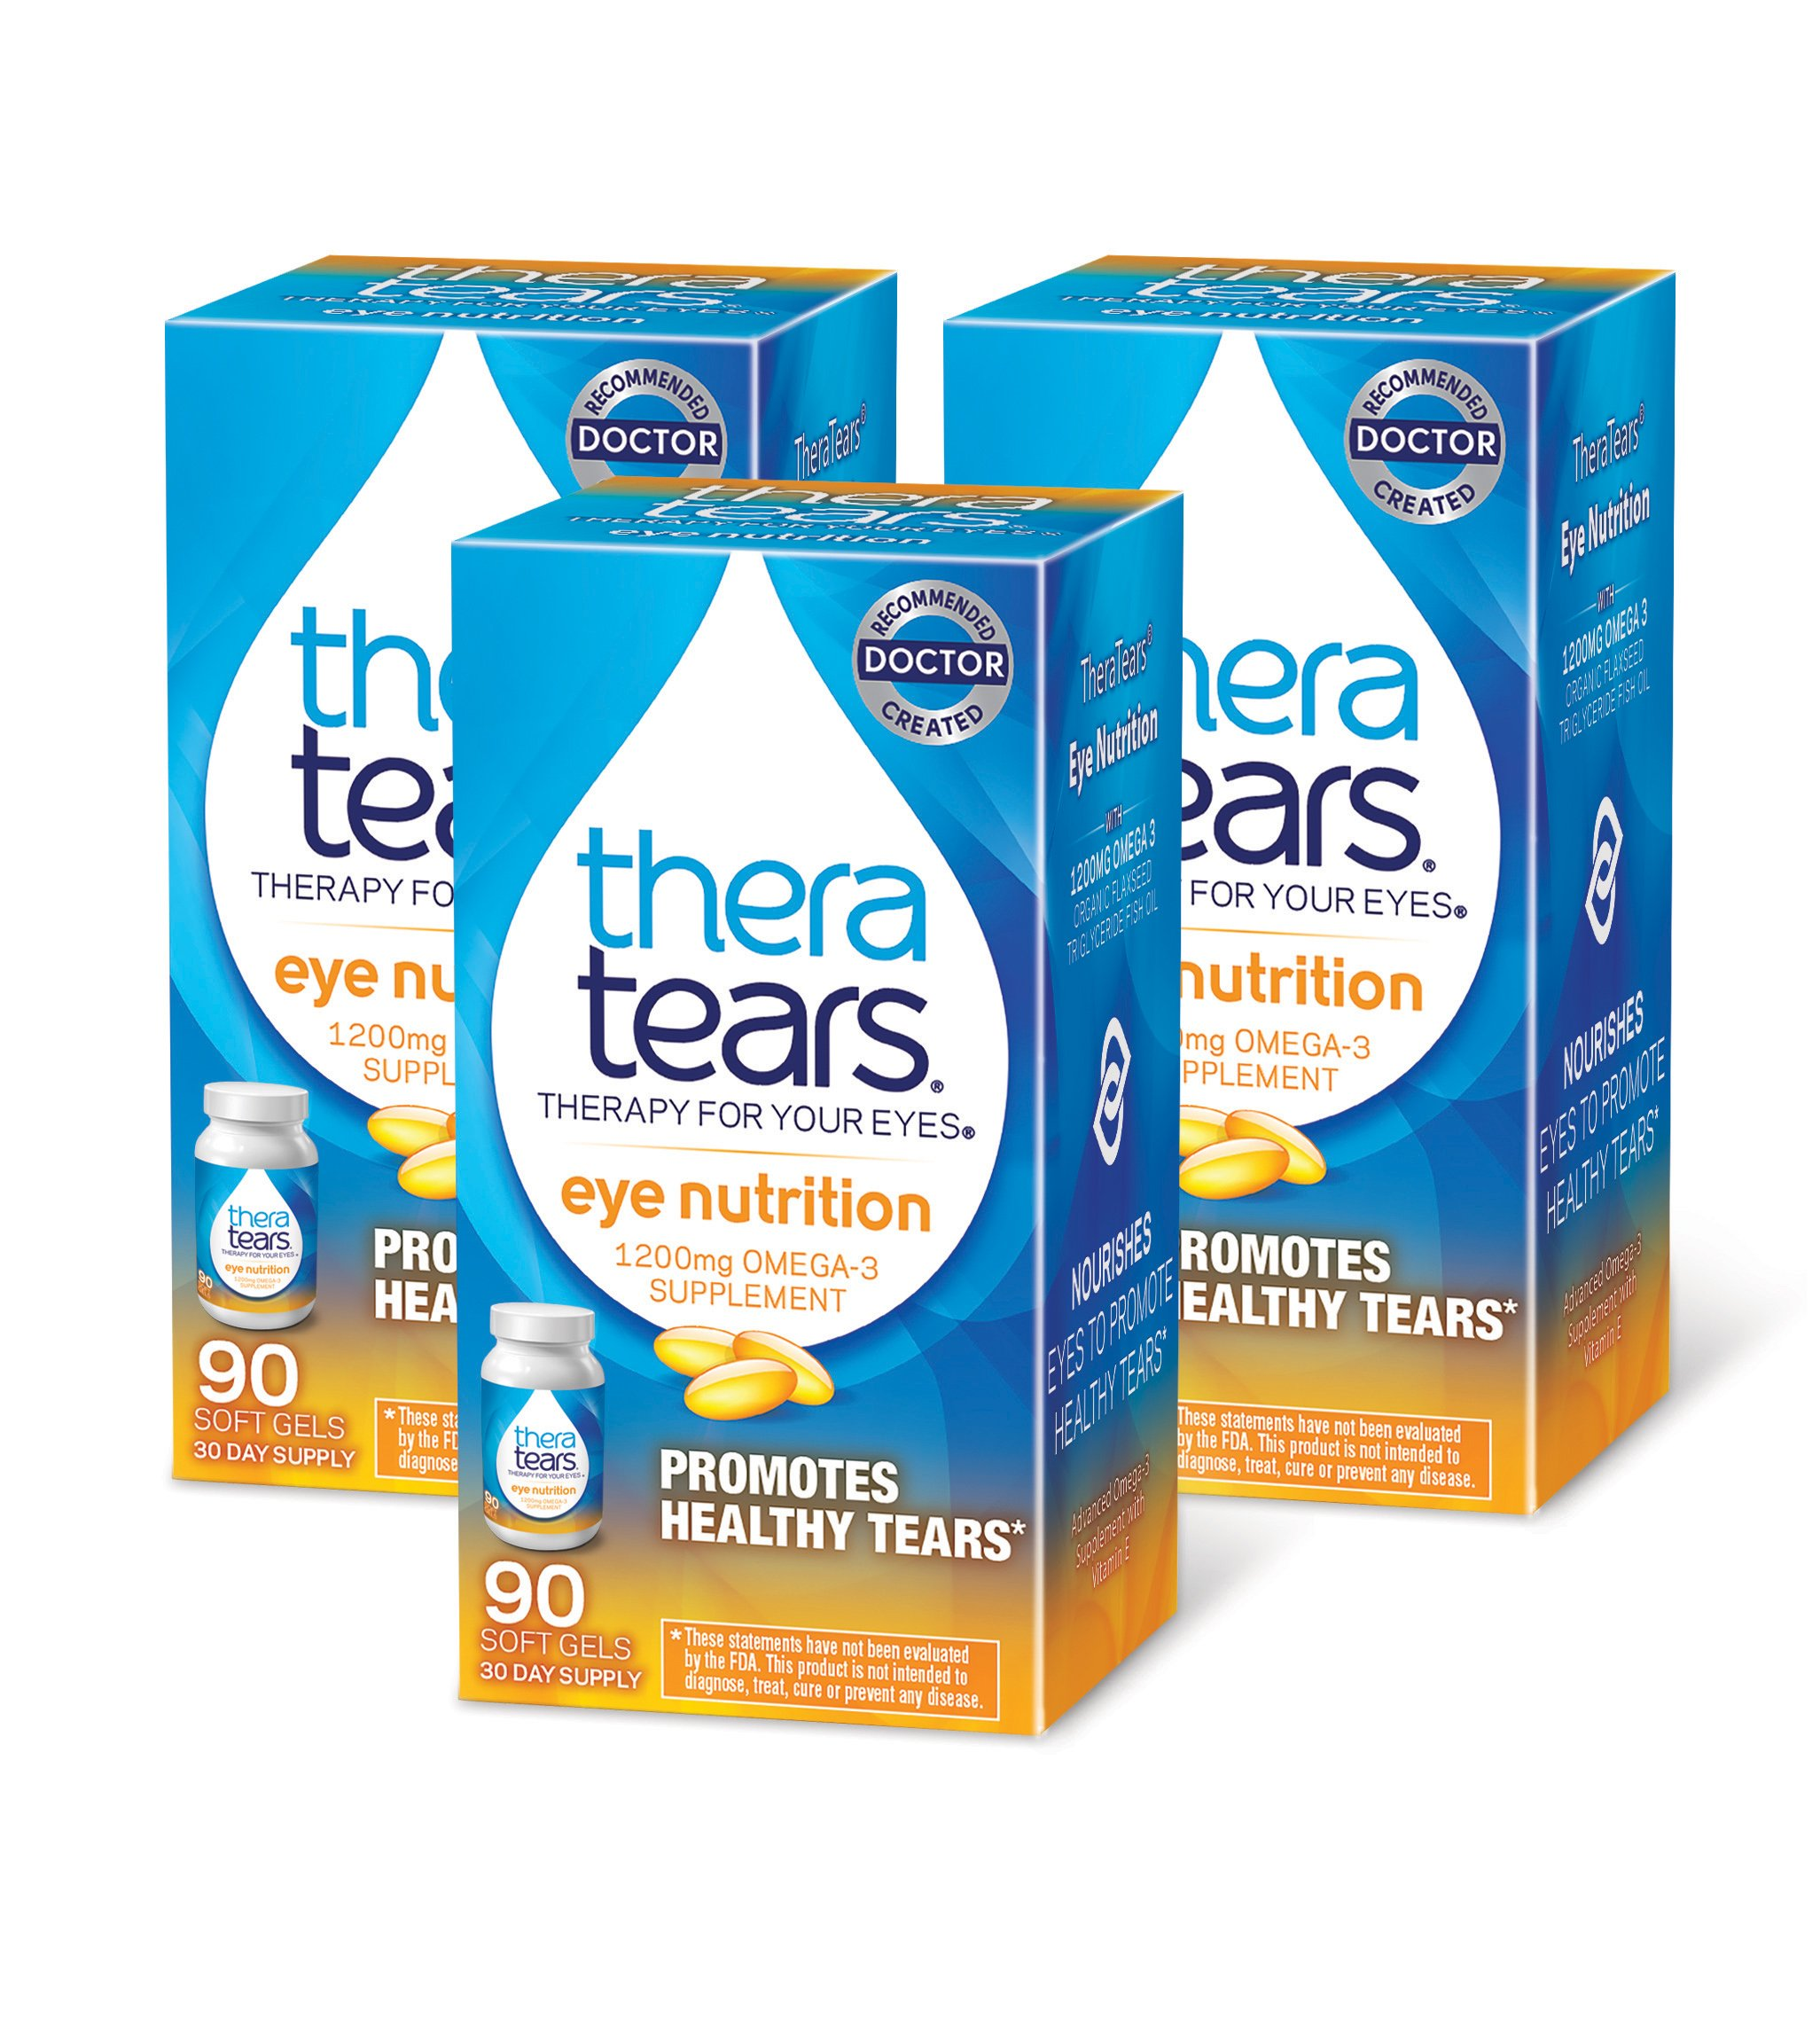 TheraTears 1200mg Omega 3 Supplement for Eye Nutrition, Organic Flaxseed Triglyceride Fish Oil and Vitamin E, 90 Count, 3 Pack